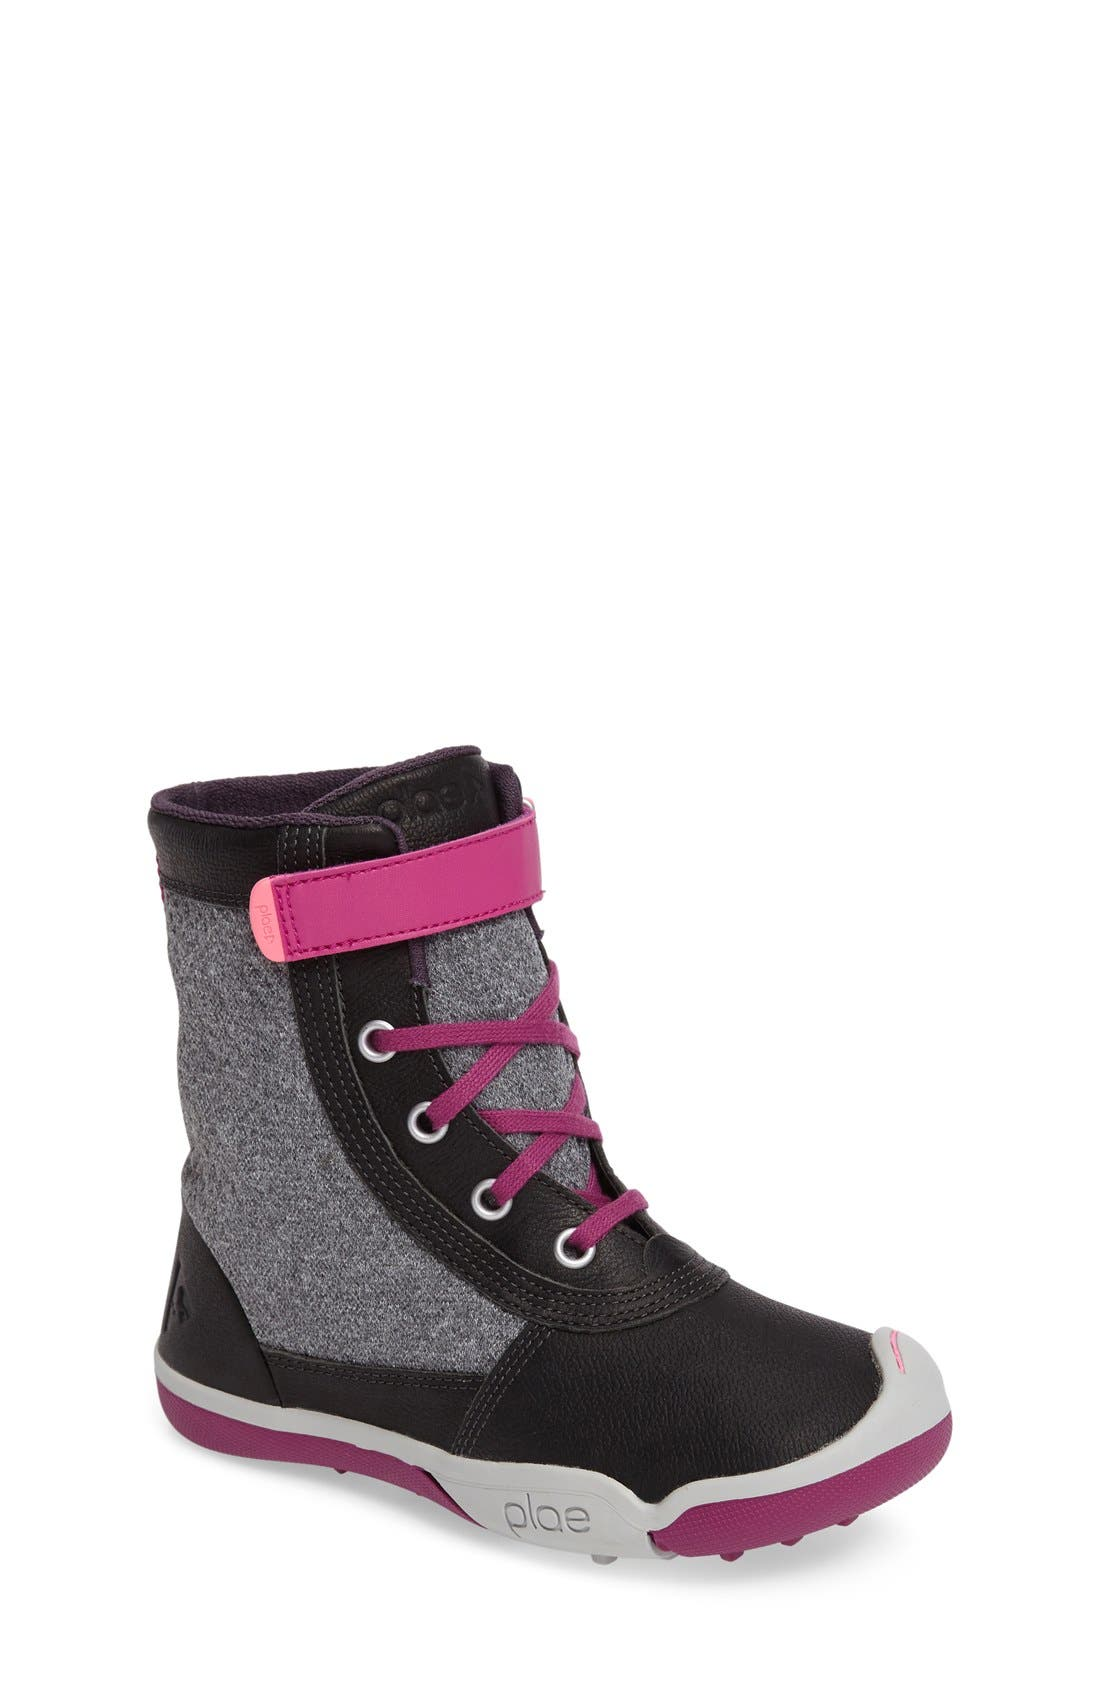 'Noel Customiz' Boot,                             Main thumbnail 1, color,                             Black/ Grey Leather